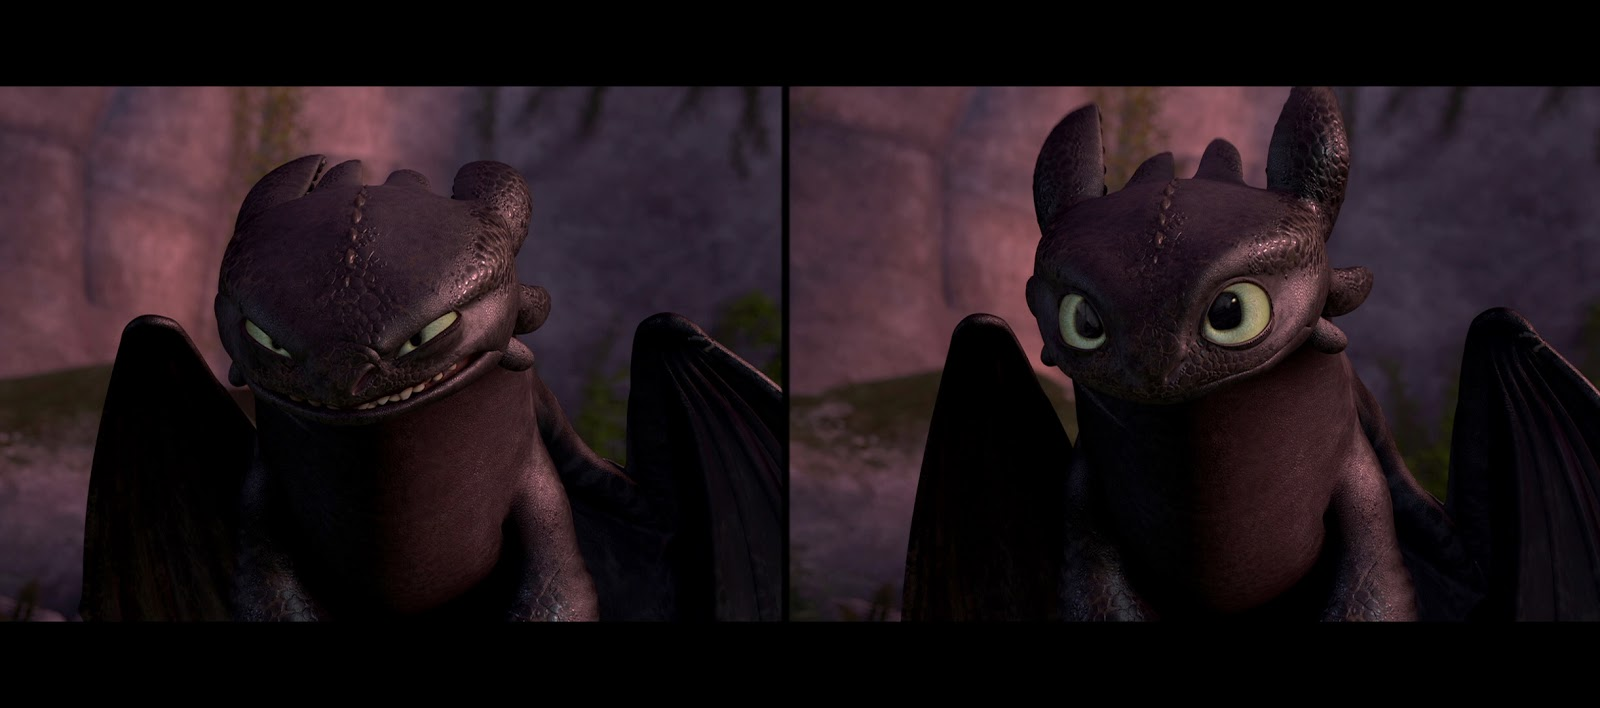 How To Train Your Dragon My Favorite Movie Of All Timewhy Entry 3